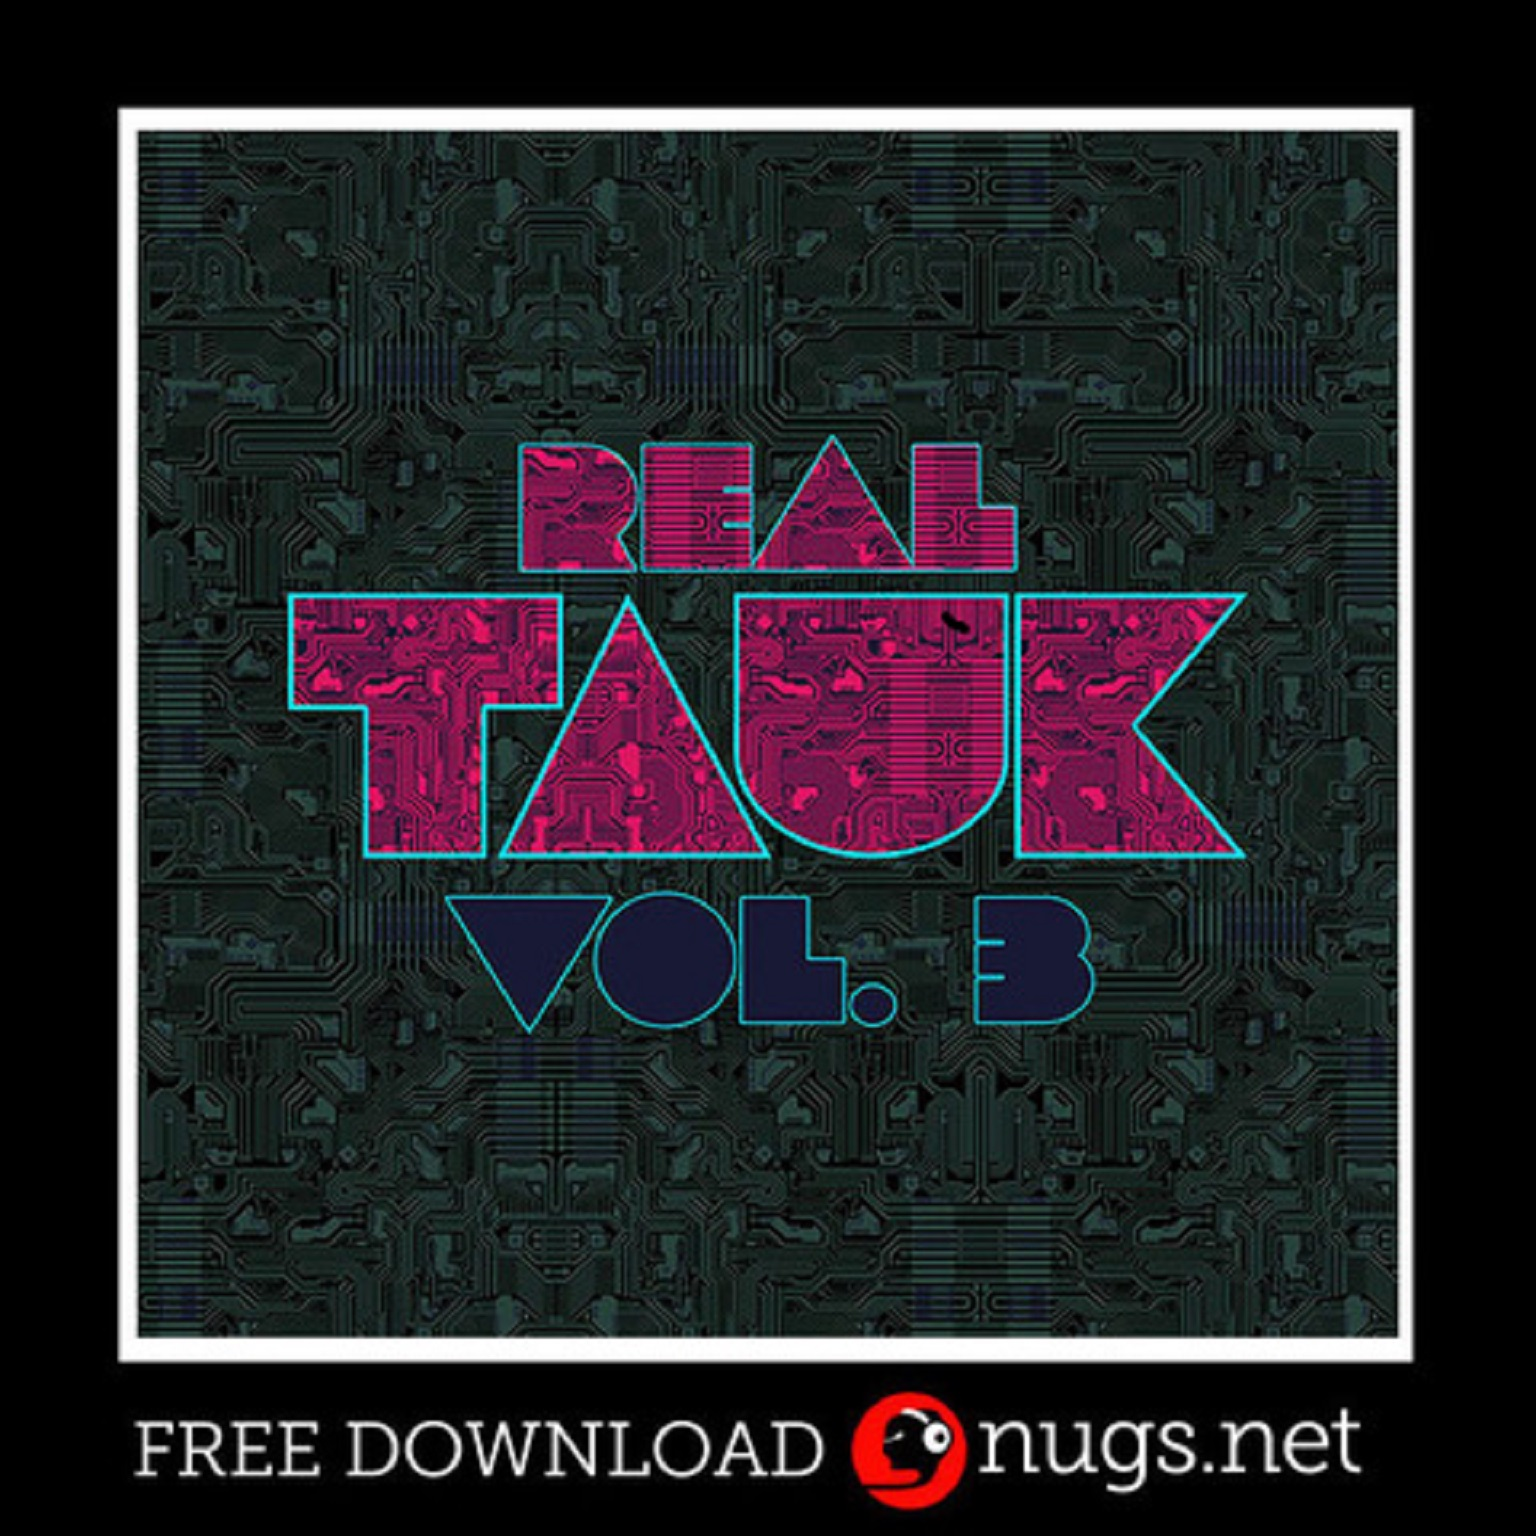 TAUK Releases Real TAUK Vol. 3 for Free